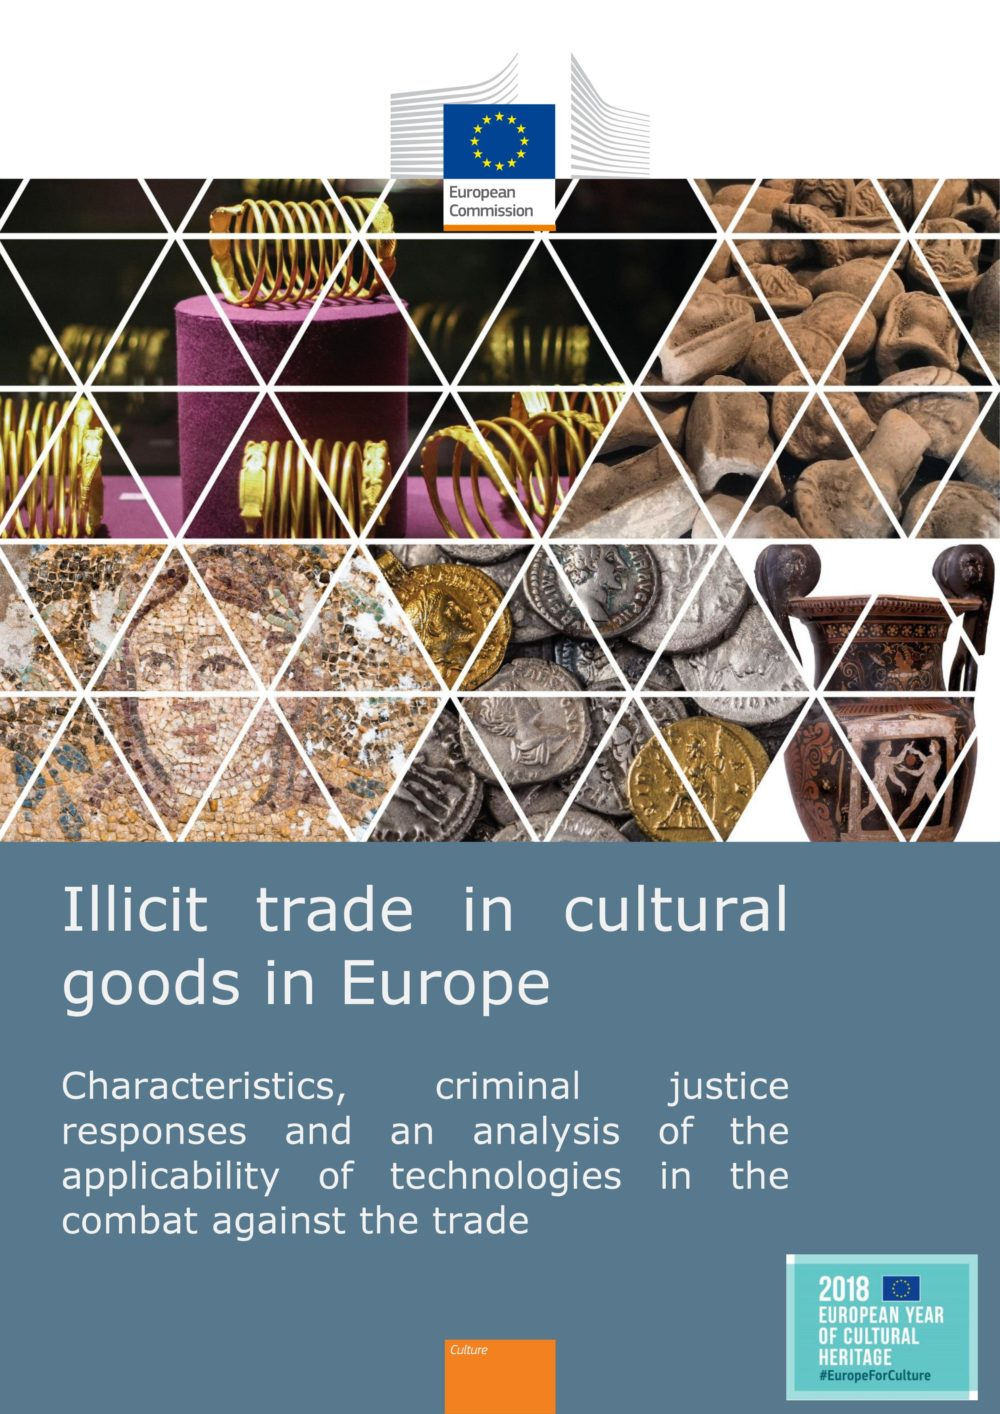 Raport: Illicit trade in cultural goods in Europe